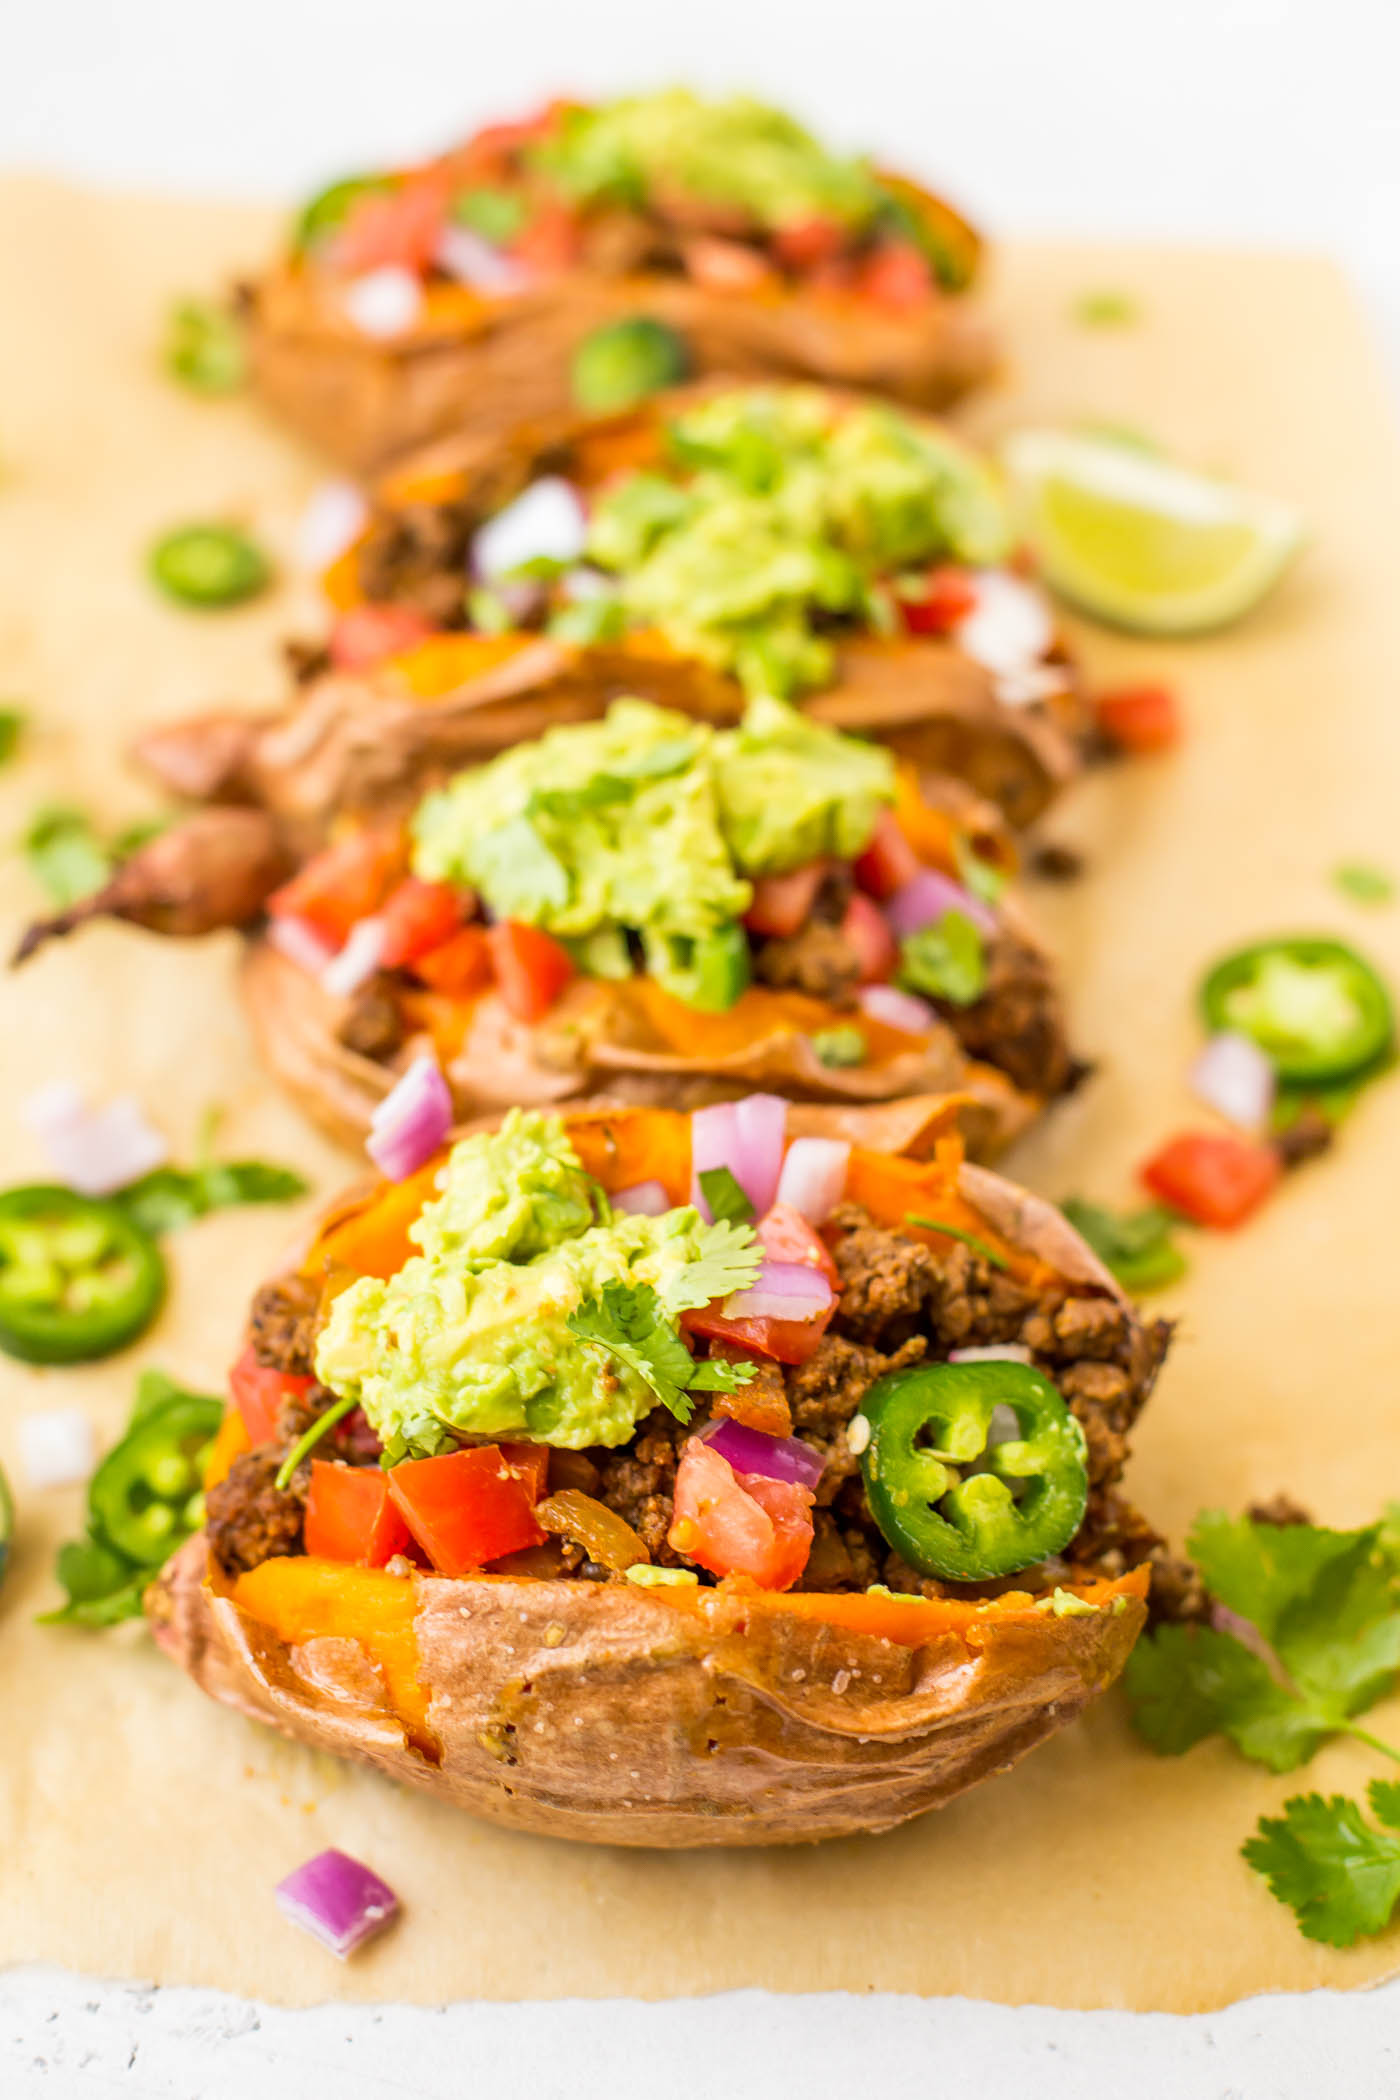 Four sweet potatoes stuffed with mexican ingredients ground beef, jalepenos, diced tomatoes, diced onion, cilantro, and smashed avocado